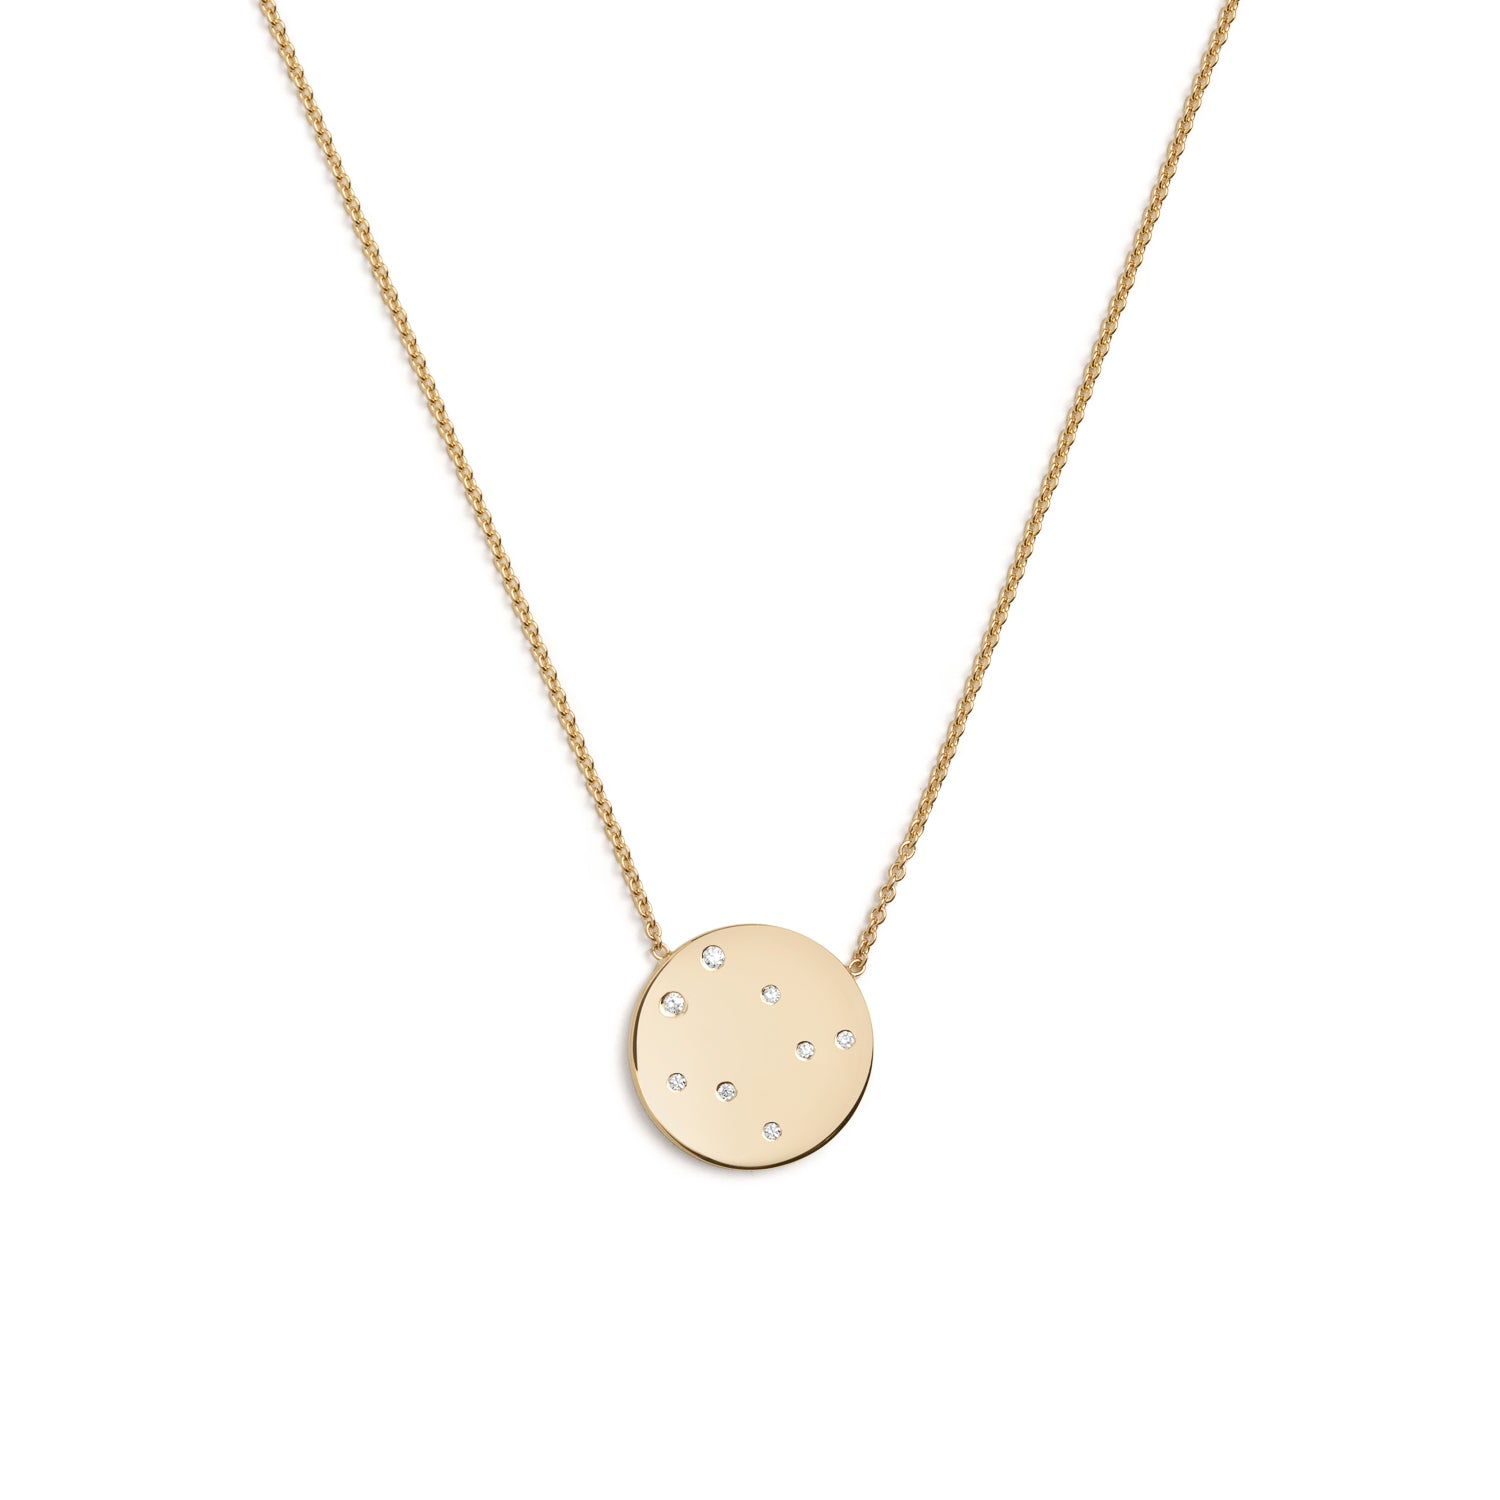 Gemini Star Sign Necklace in Gold